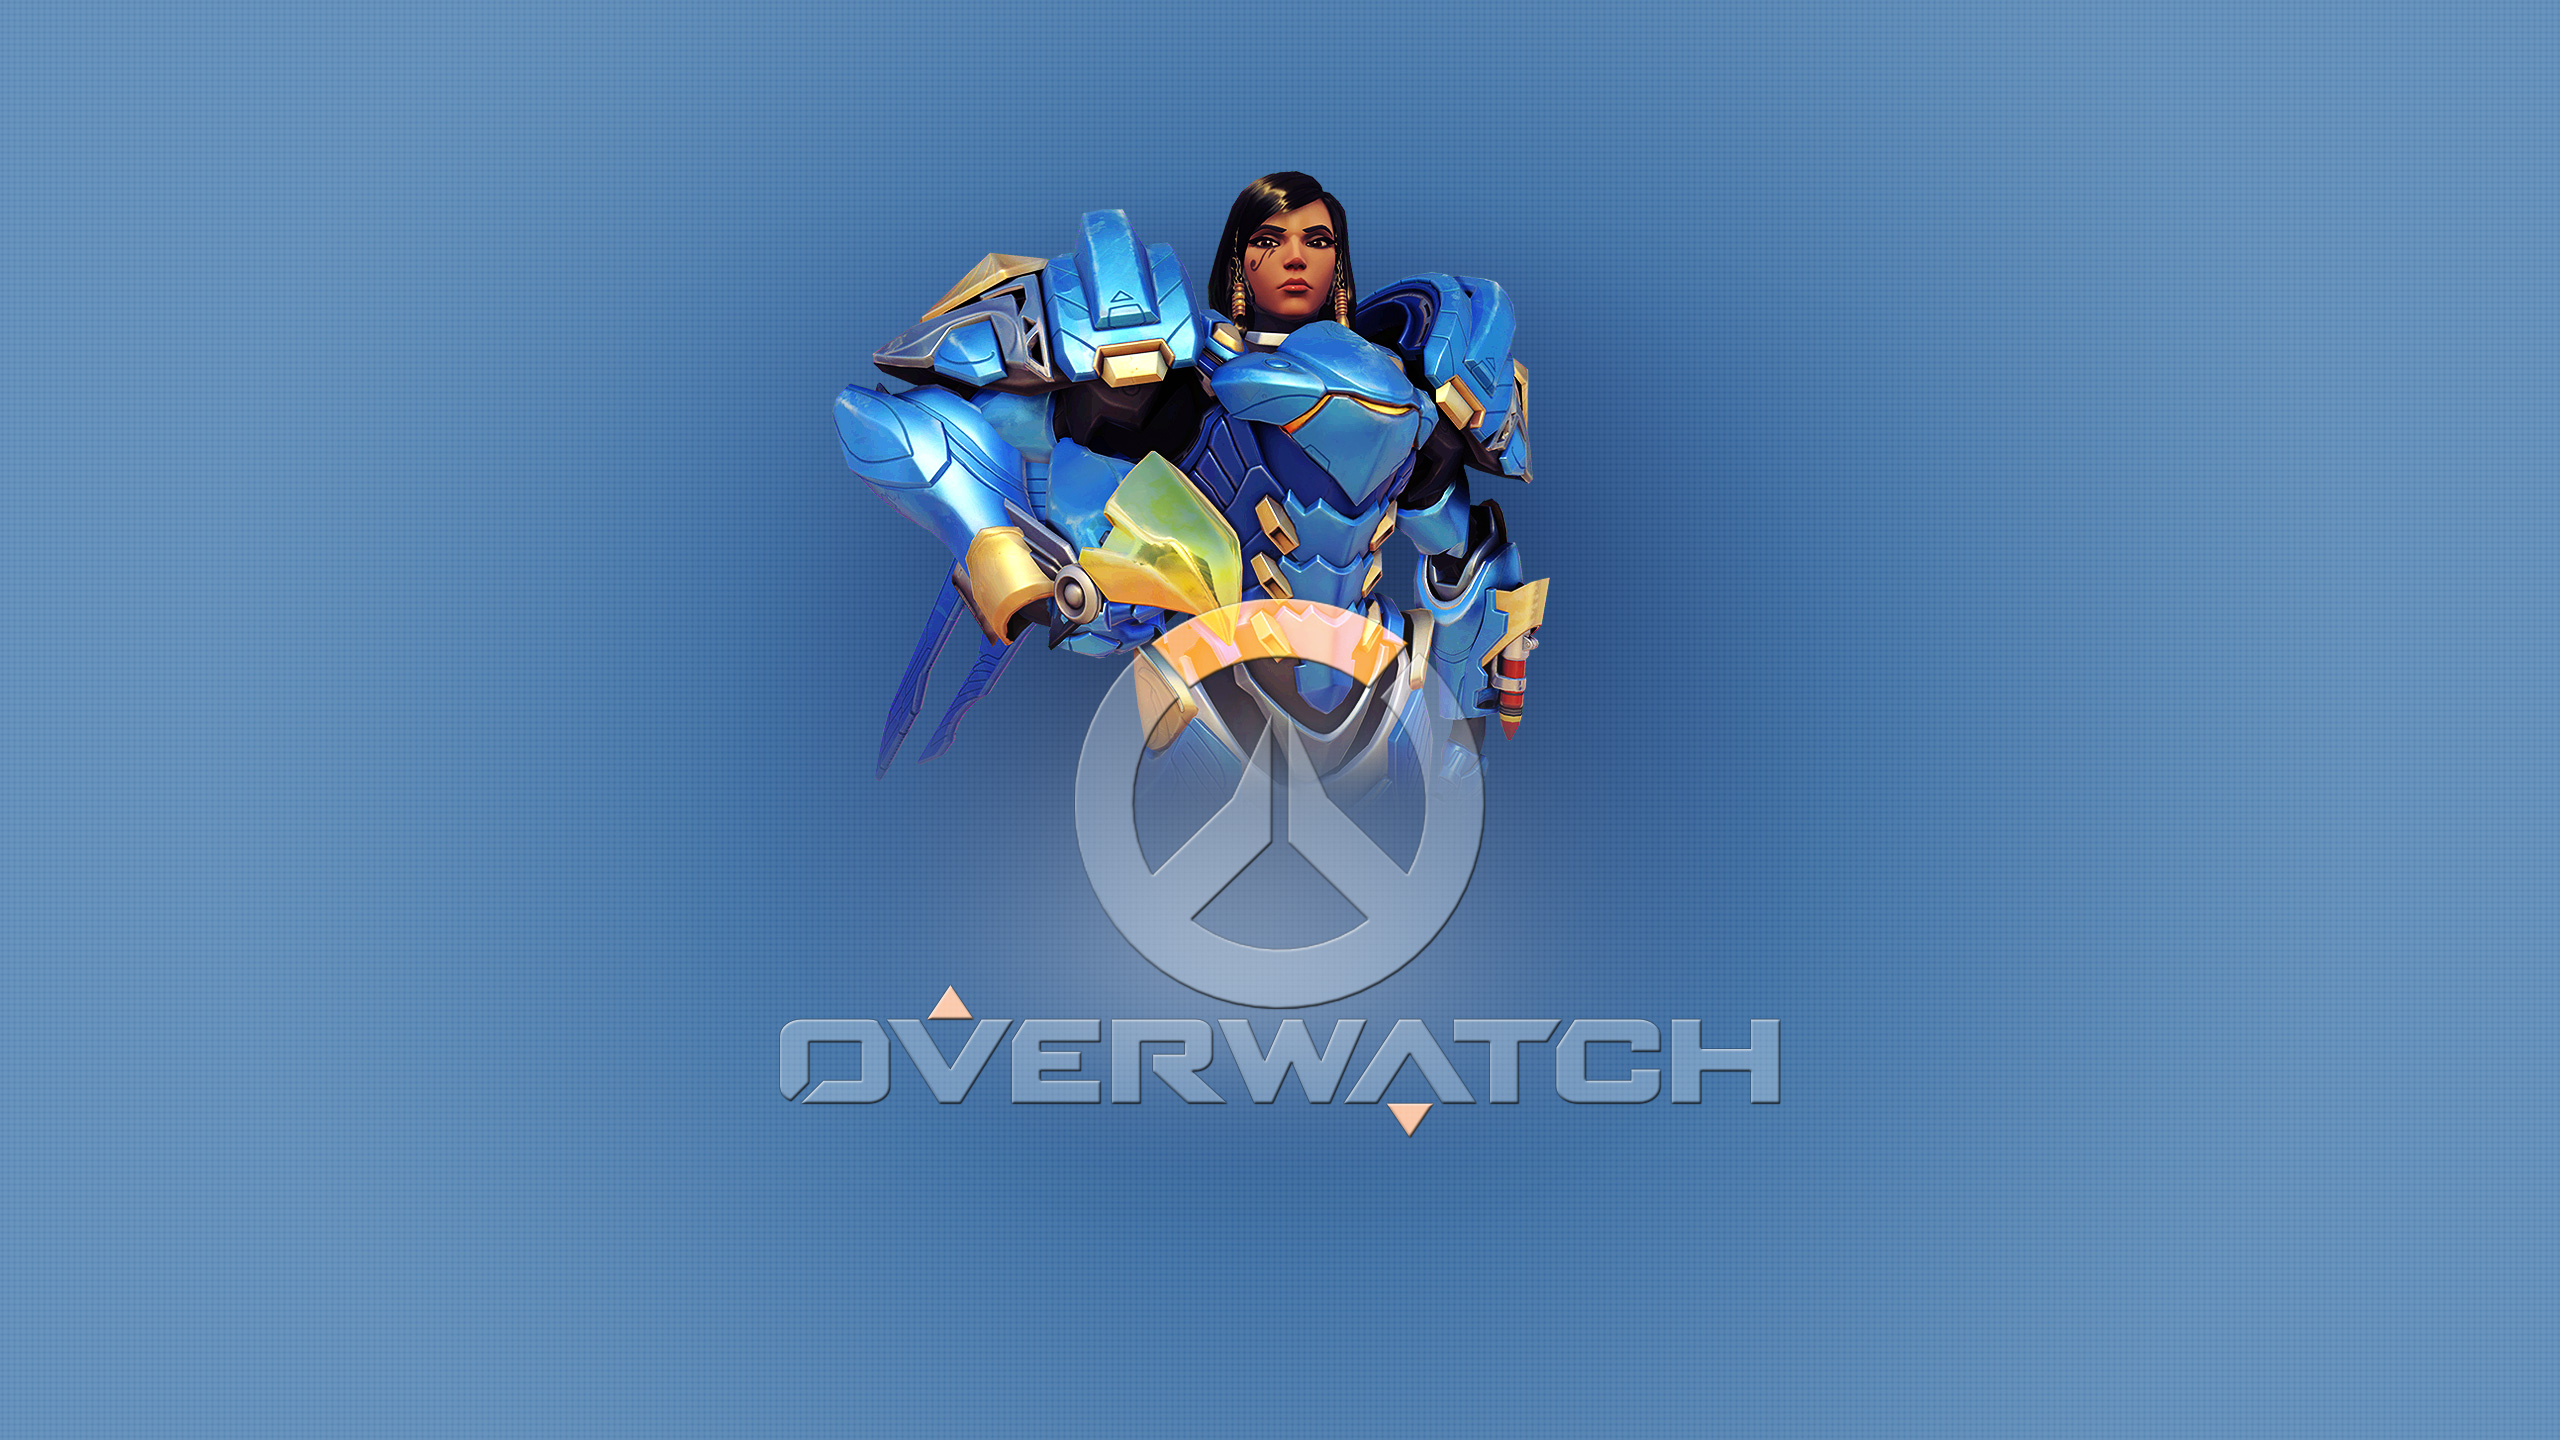 Overwatch Pharah Wallpapers HD Wallpapers 2560x1440